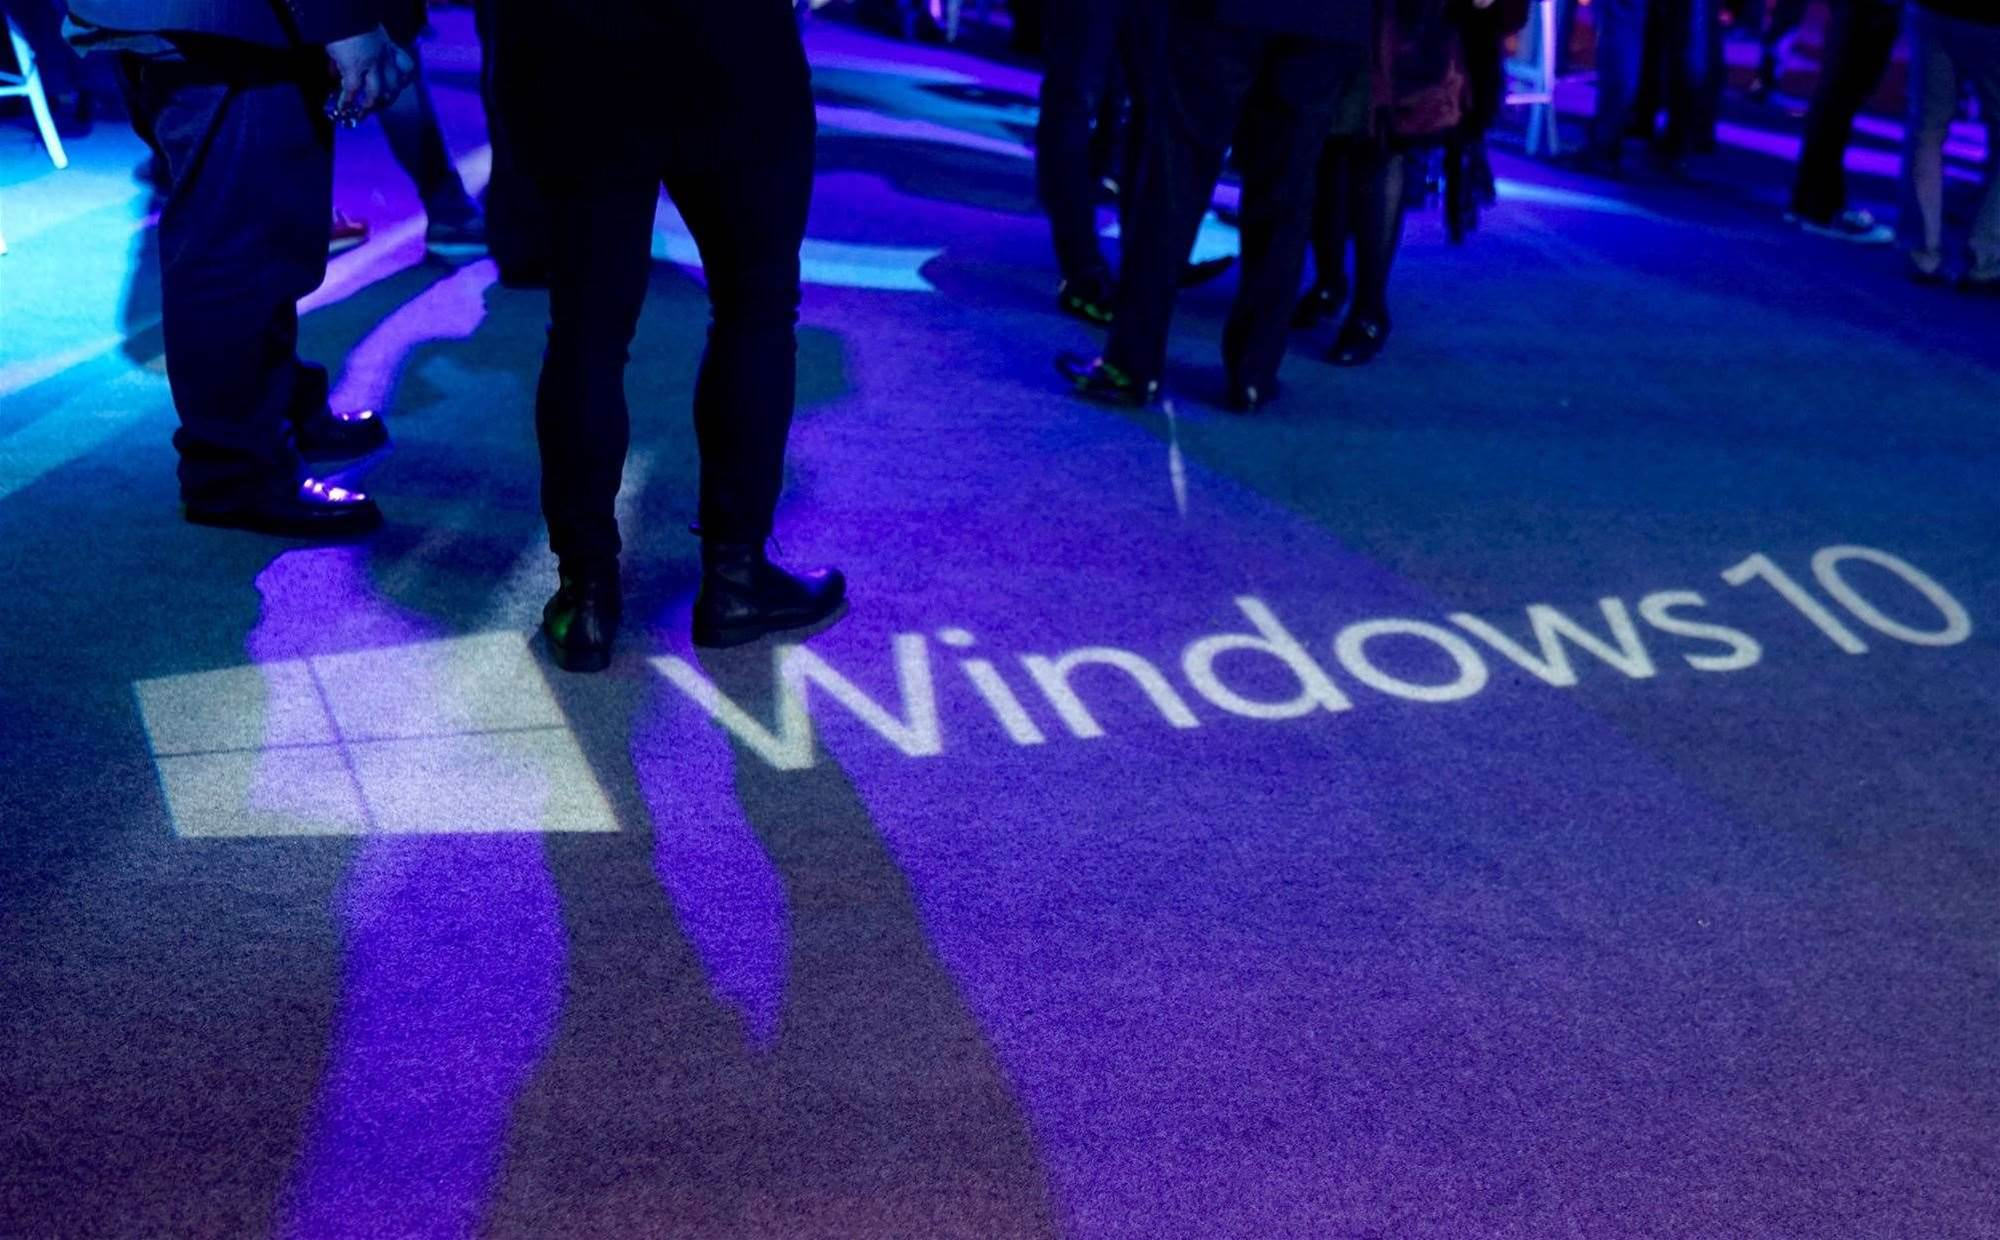 Windows 10 lands in Australia